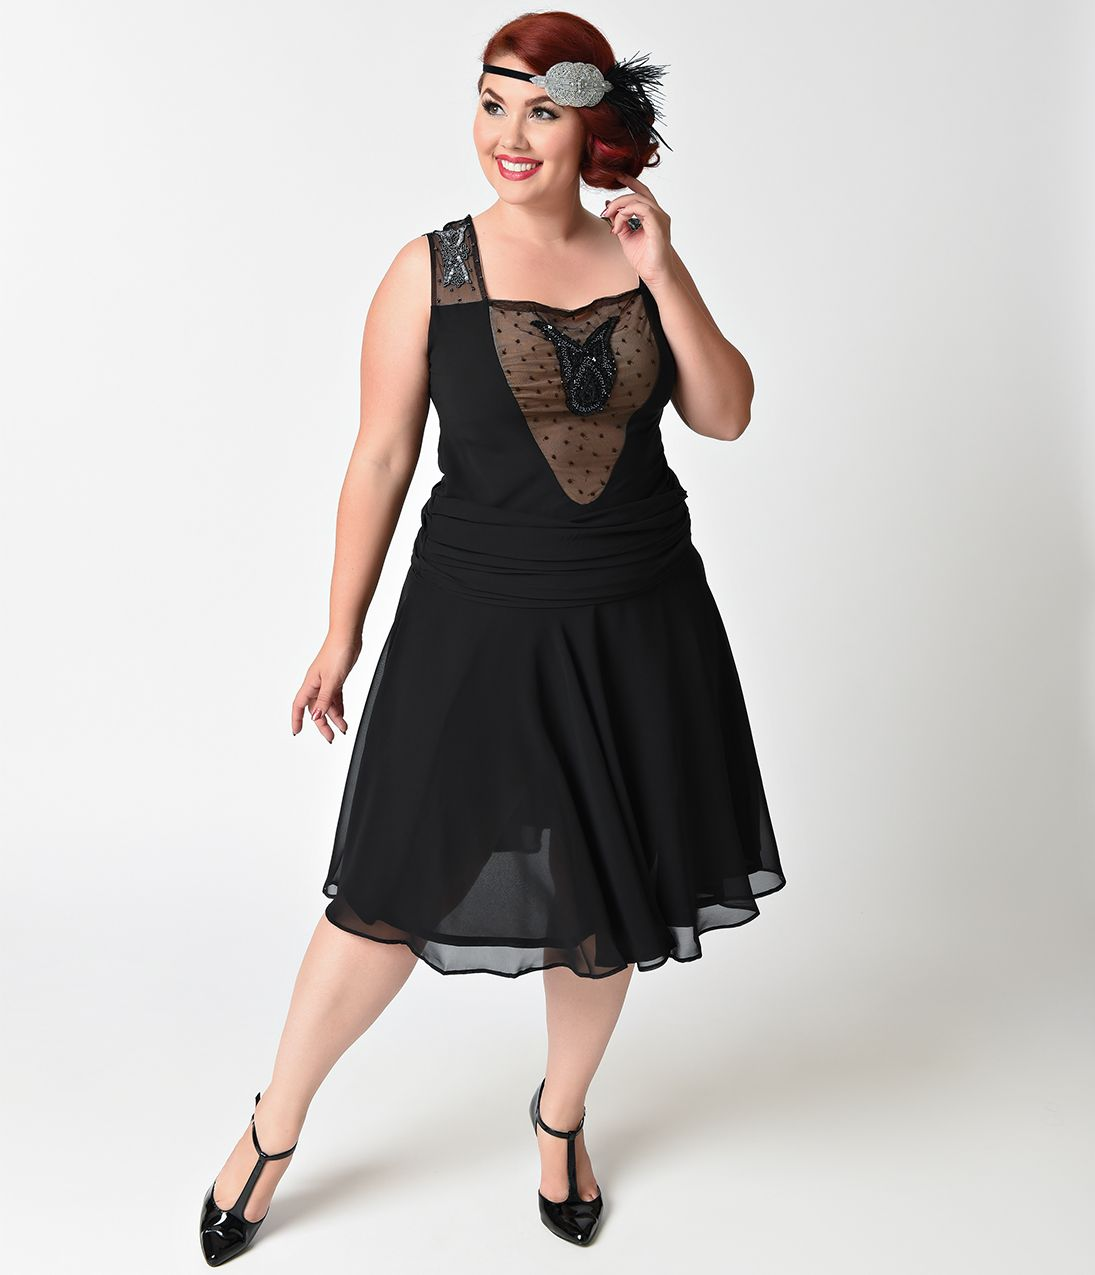 Shop 1920s Plus Size Dresses and Costumes in 2019 | Plus ...